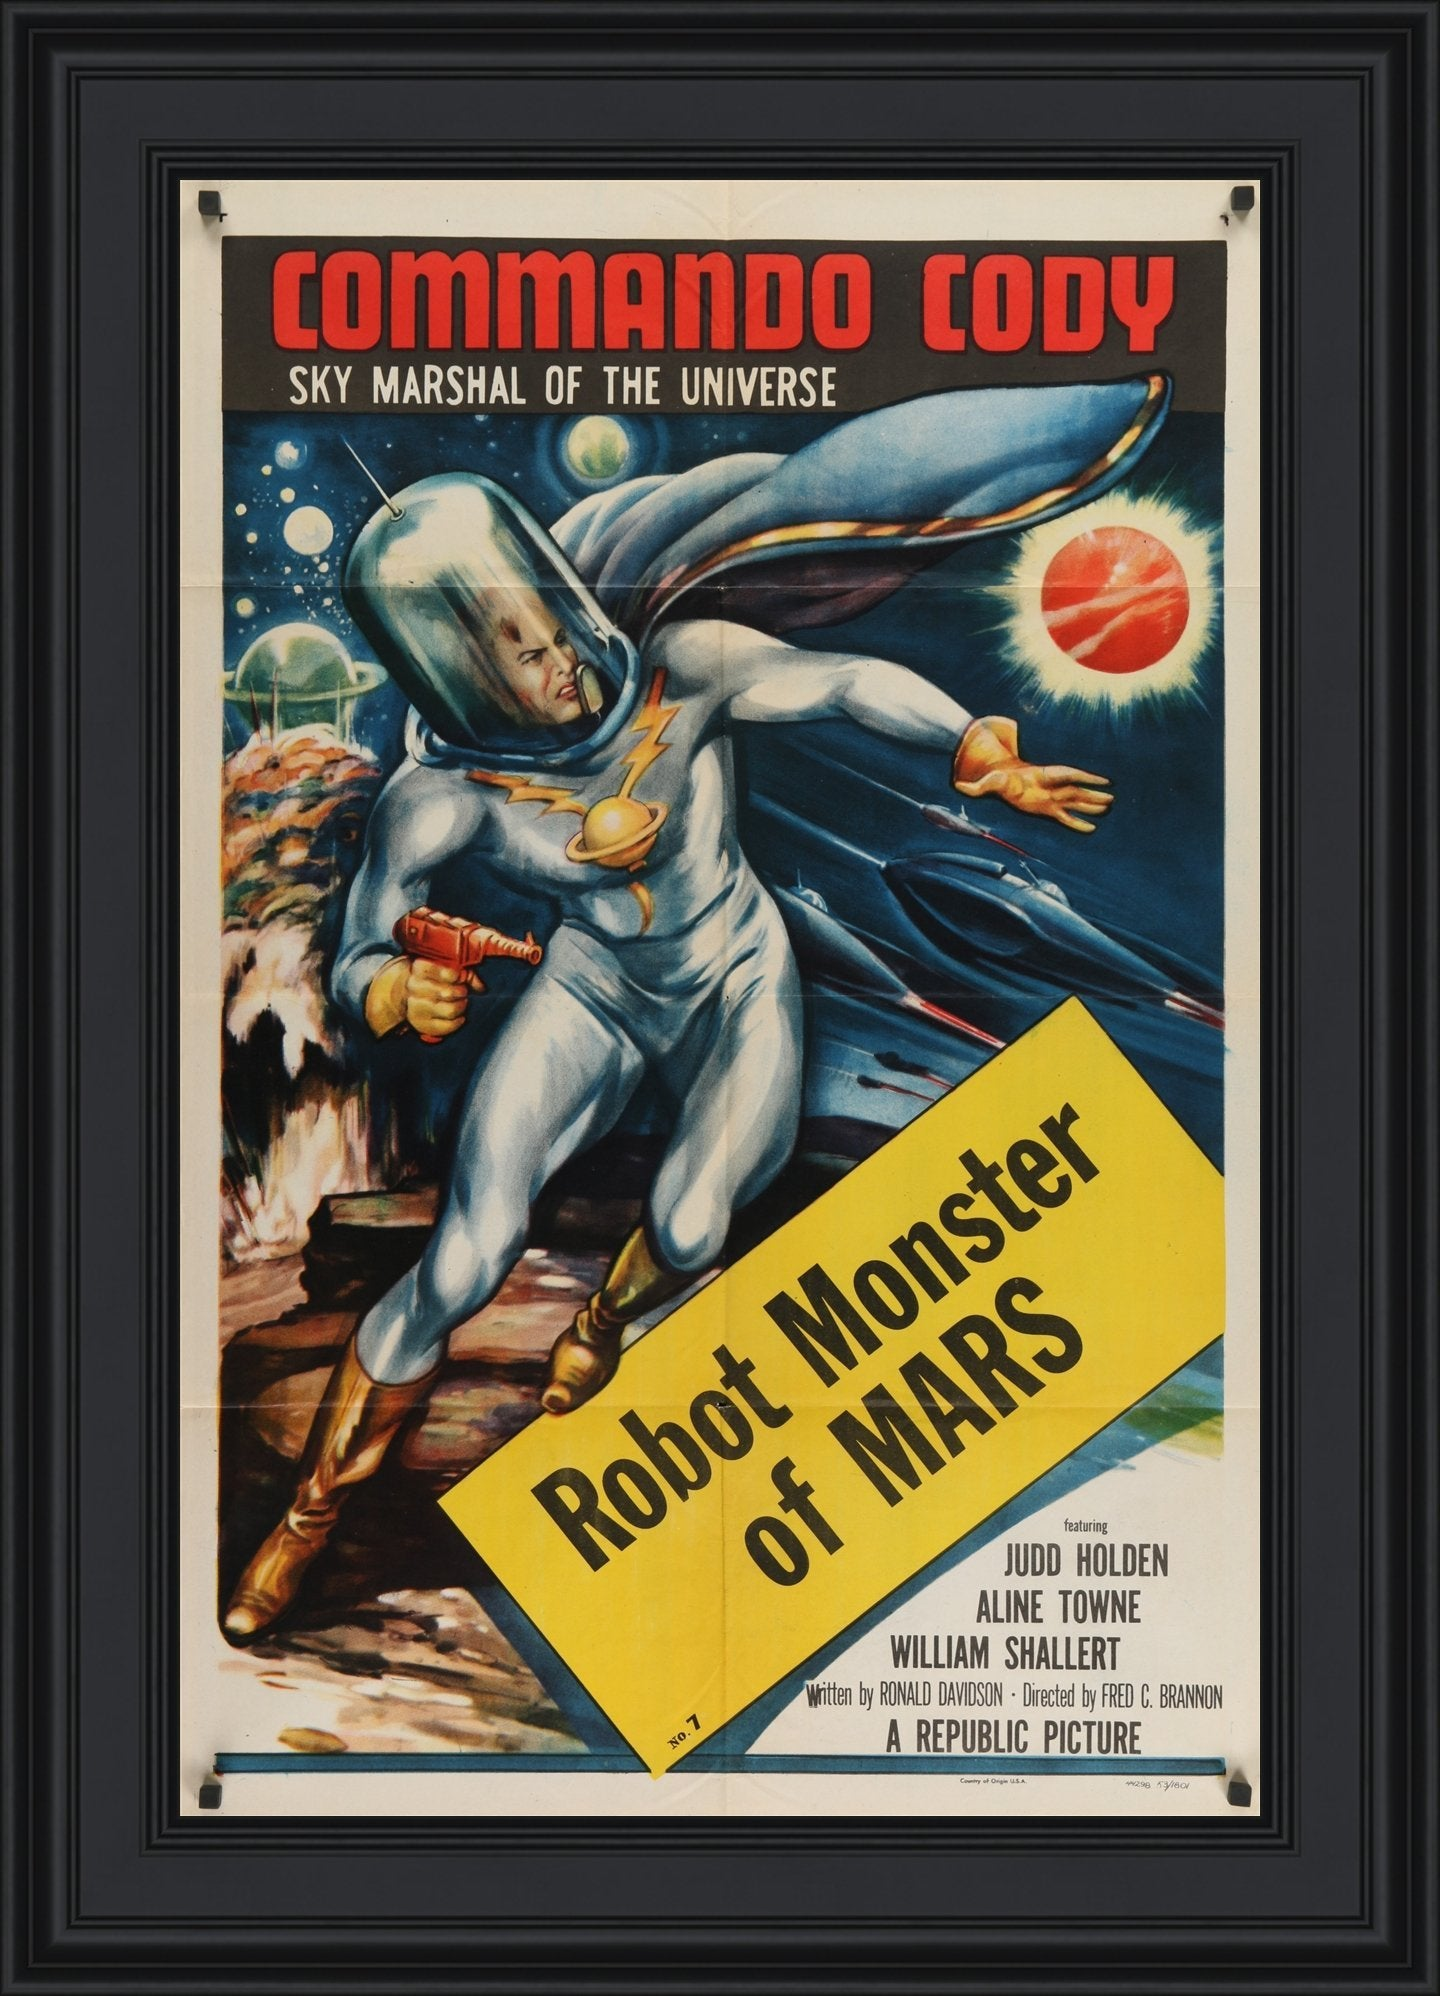 An original one sheet movie poster for Commando Cody - Chapter 7 - Robot Monster of Mars